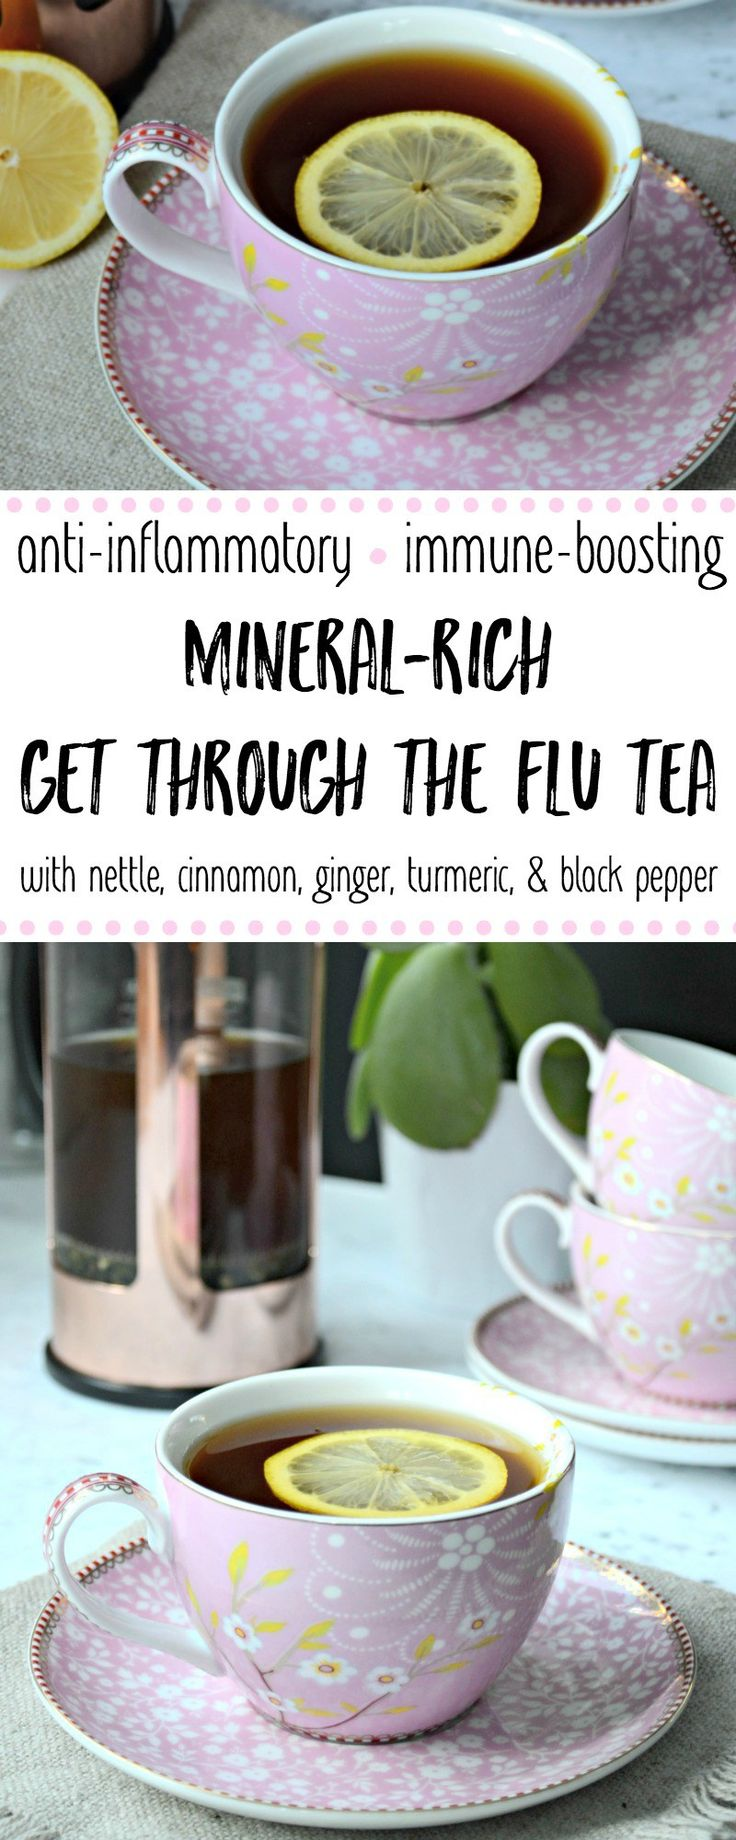 When the body aches, chills, and overall discomfort of the flu take away your appetite, stay hydrated and nourished with this anti-inflammatory, immune-boosting, mineral-rich Get Through The Flu Tea. With the benefits of nettle, cinnamon, ginger, and turmeric, it helps your body heal naturally. #flutea #antiinflammatory #intuitiveeating #herbalmedicine